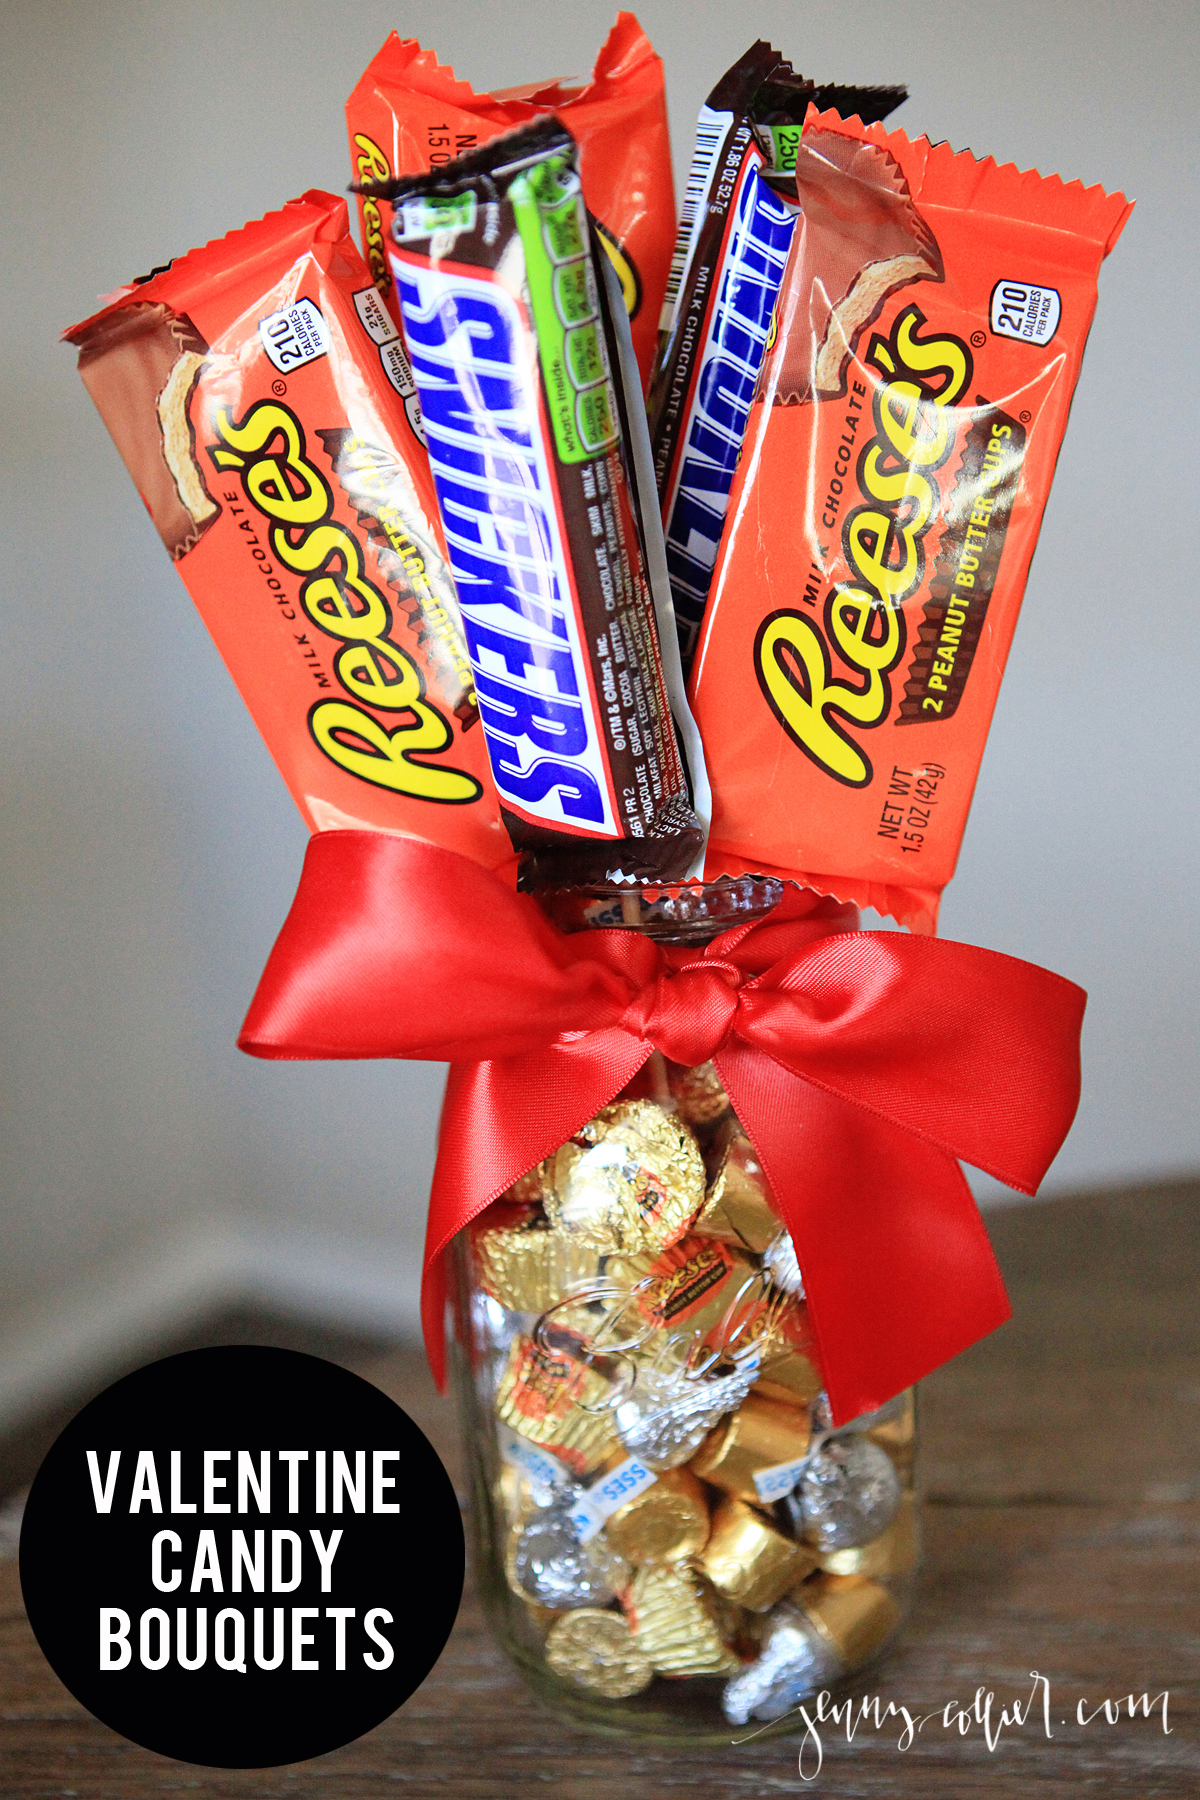 valentine candy bouquets » jenny collier blog